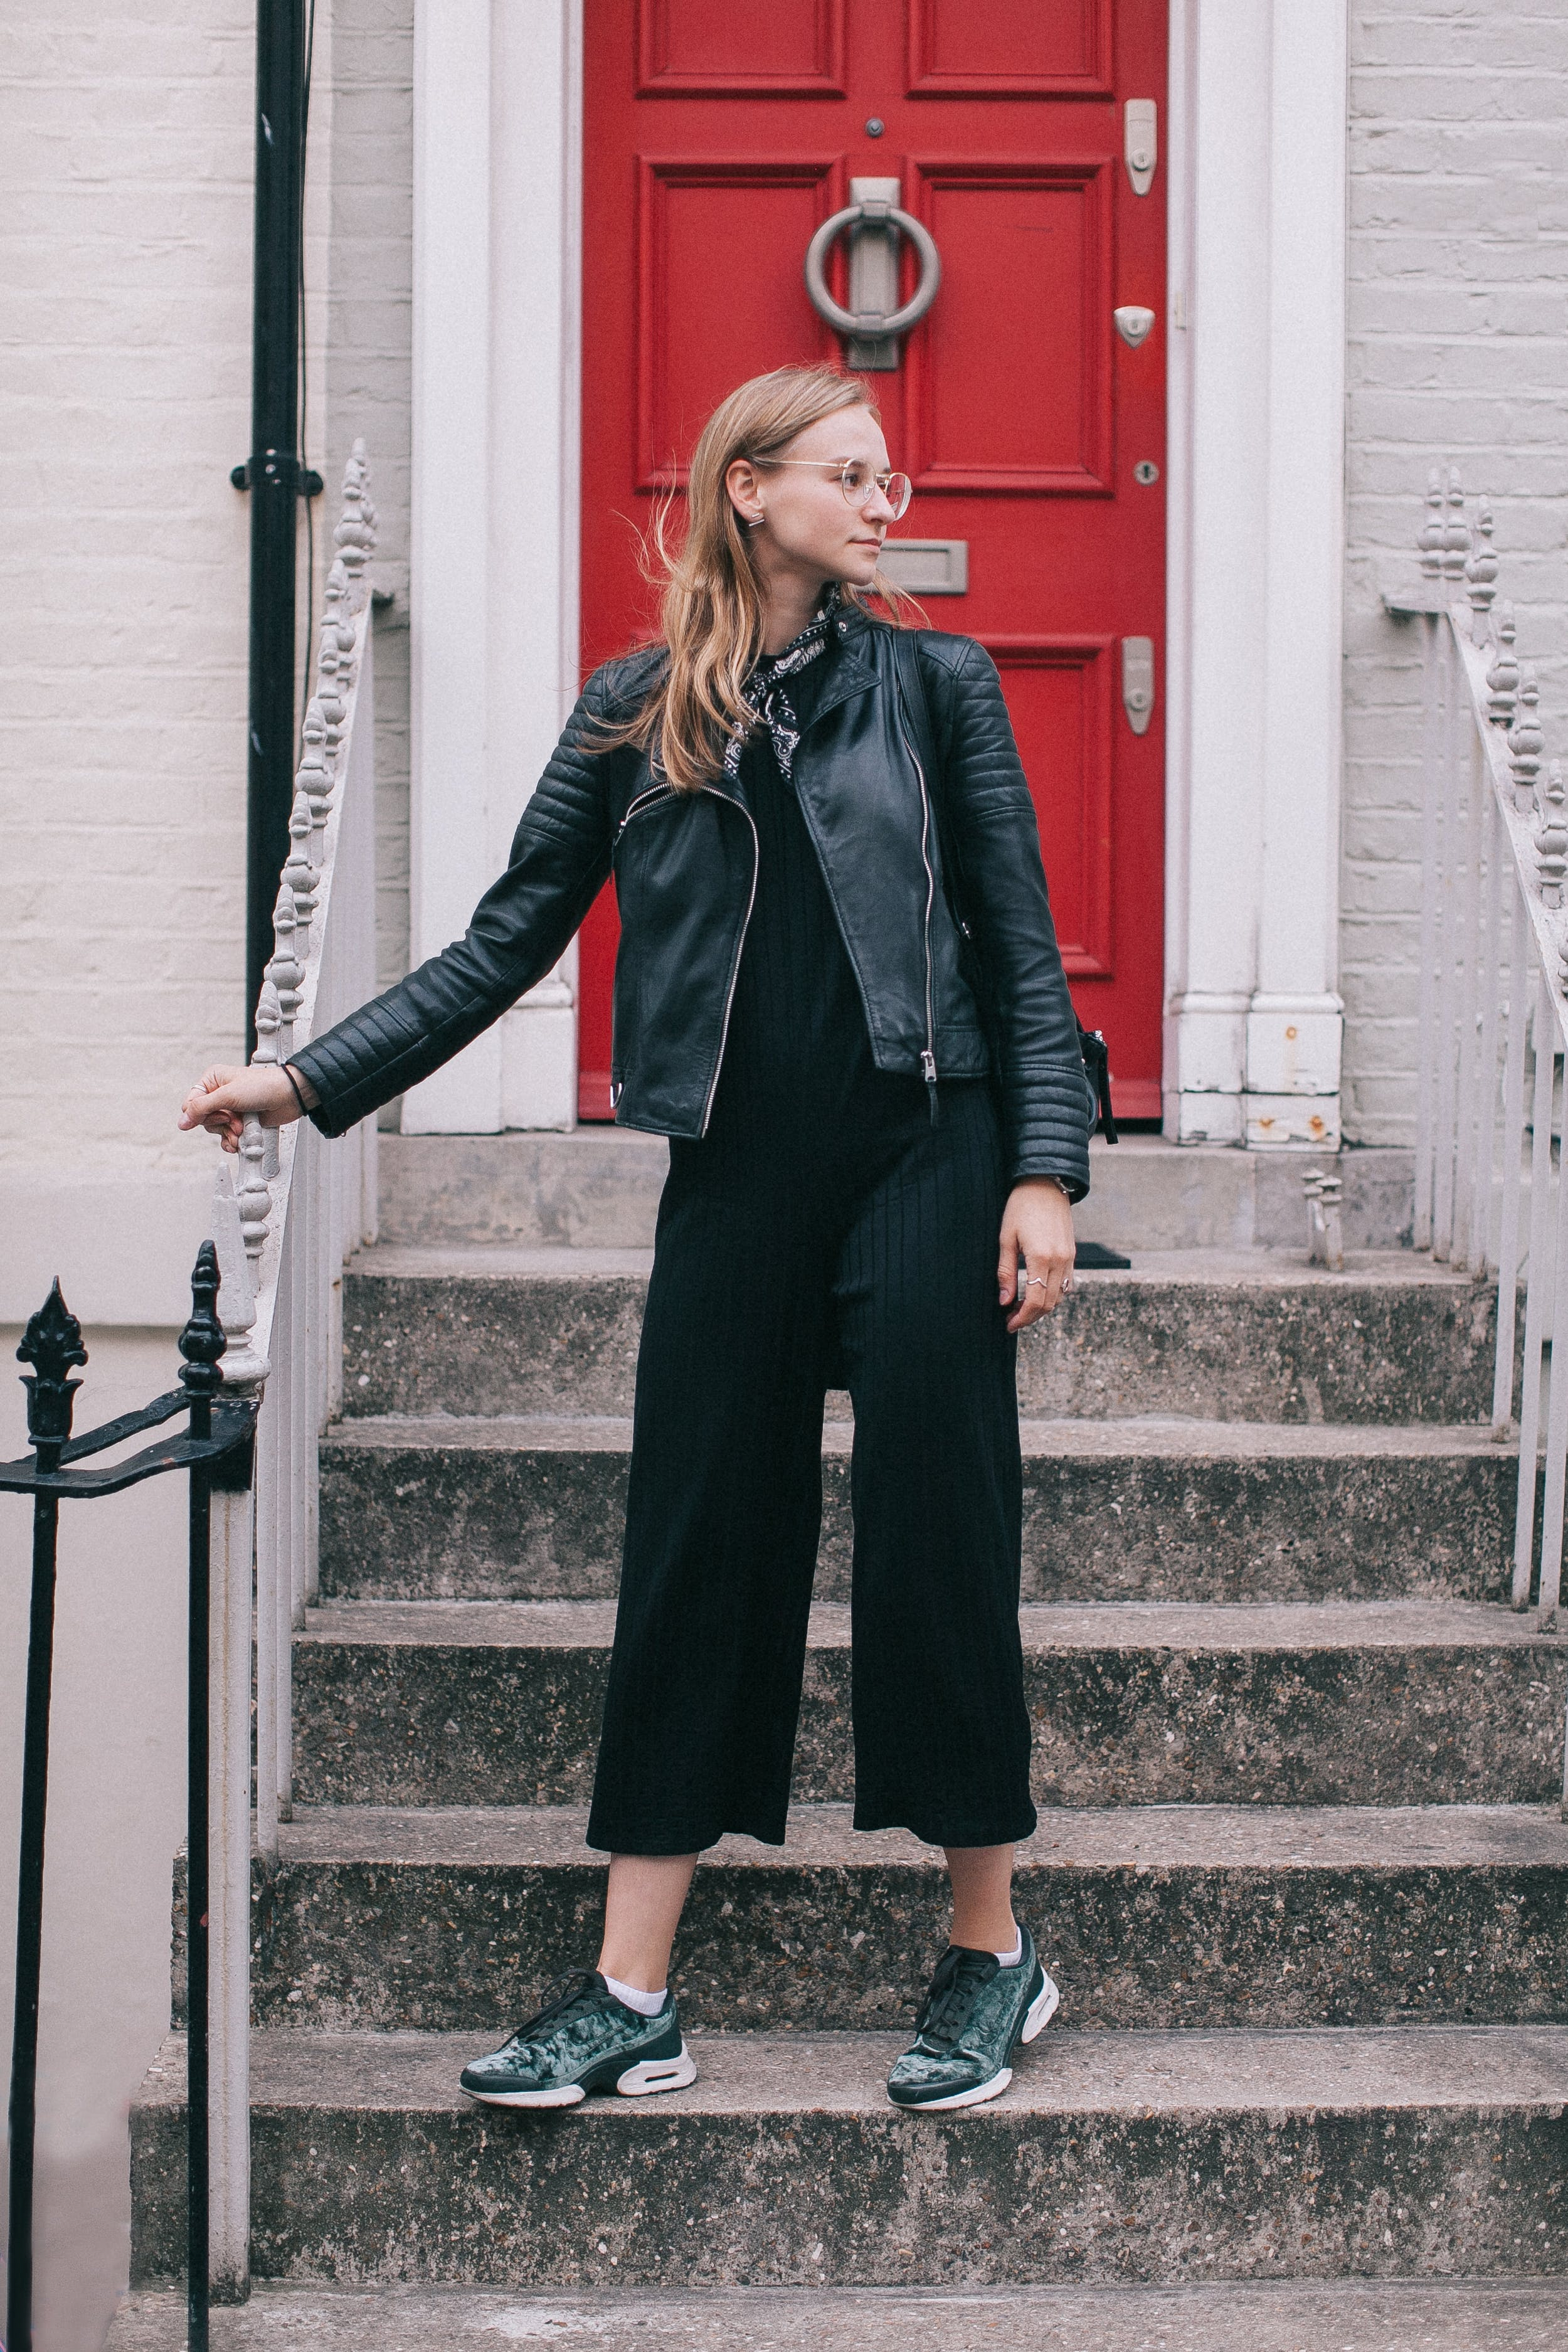 Woman Wearing Black Leather Jacket Standing on Stairs